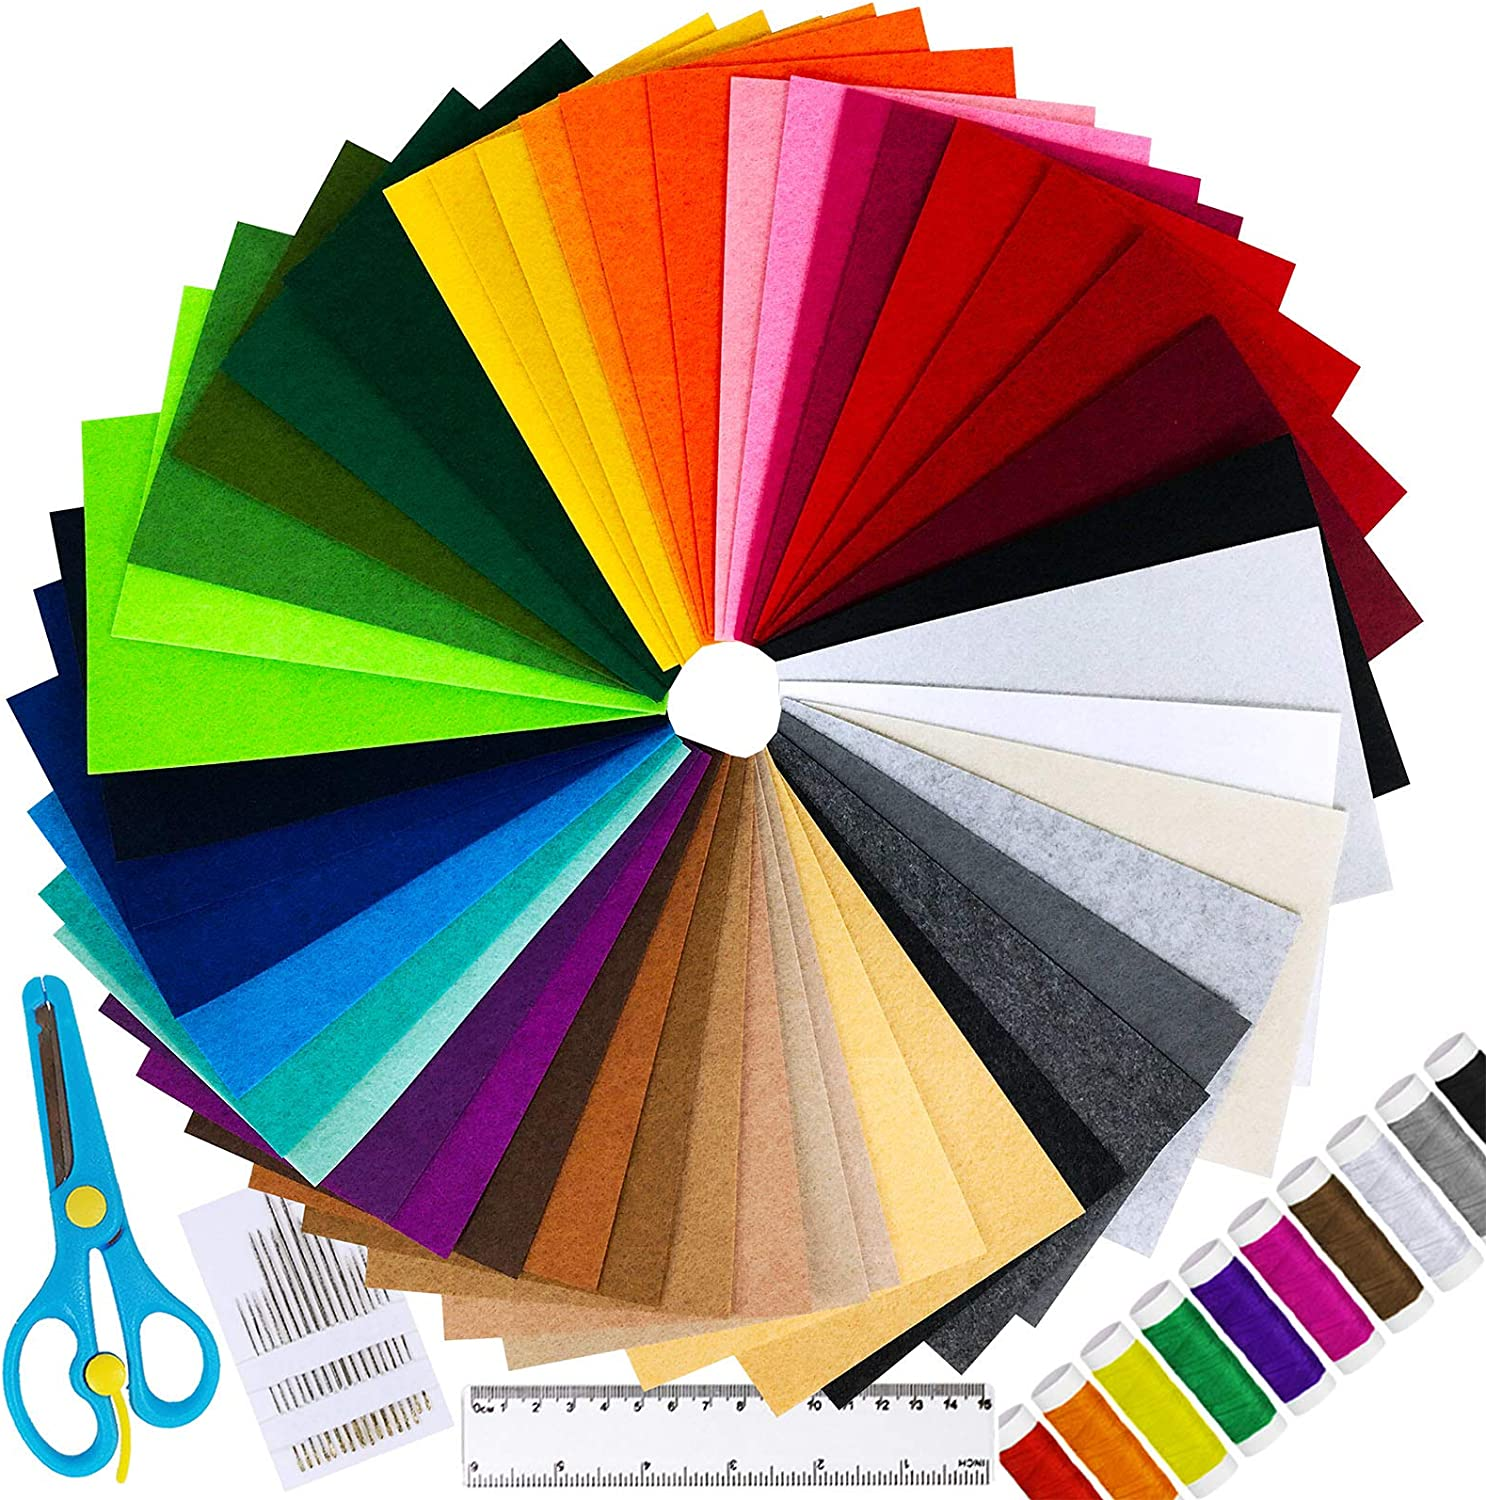 """Assorted Bright Colors Costumes 6/"""" L x 9/"""" W 18 Sheets Scouts Great for Craft Projects with Kids Classrooms 1mm Thick Per Sheet Darice Felties Stiff Felt Sheets with Sticky Backs Parties"""